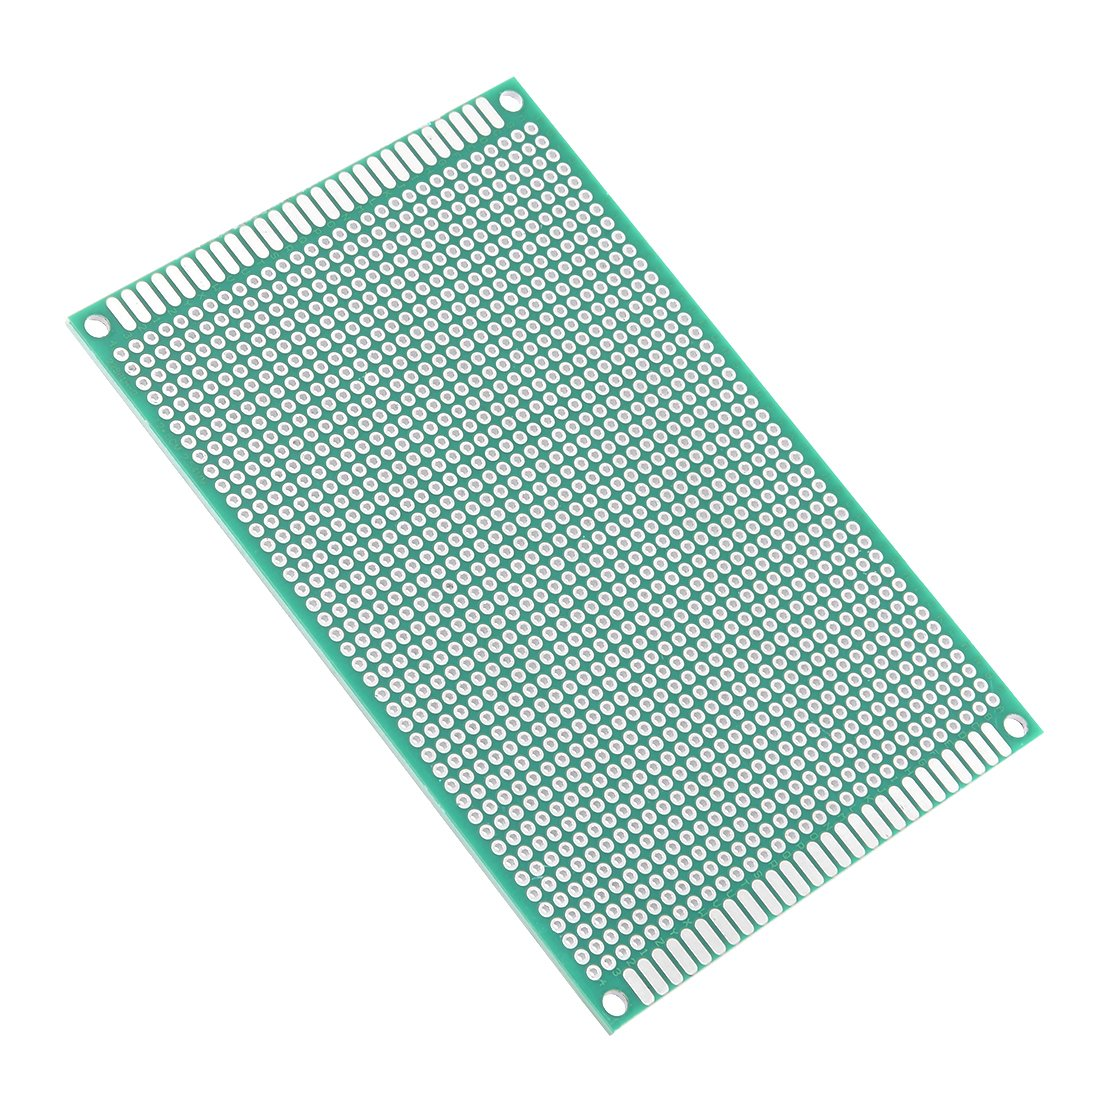 uxcell 2x8cm Double Sided Universal Printed Circuit Board for DIY Soldering 25pcs